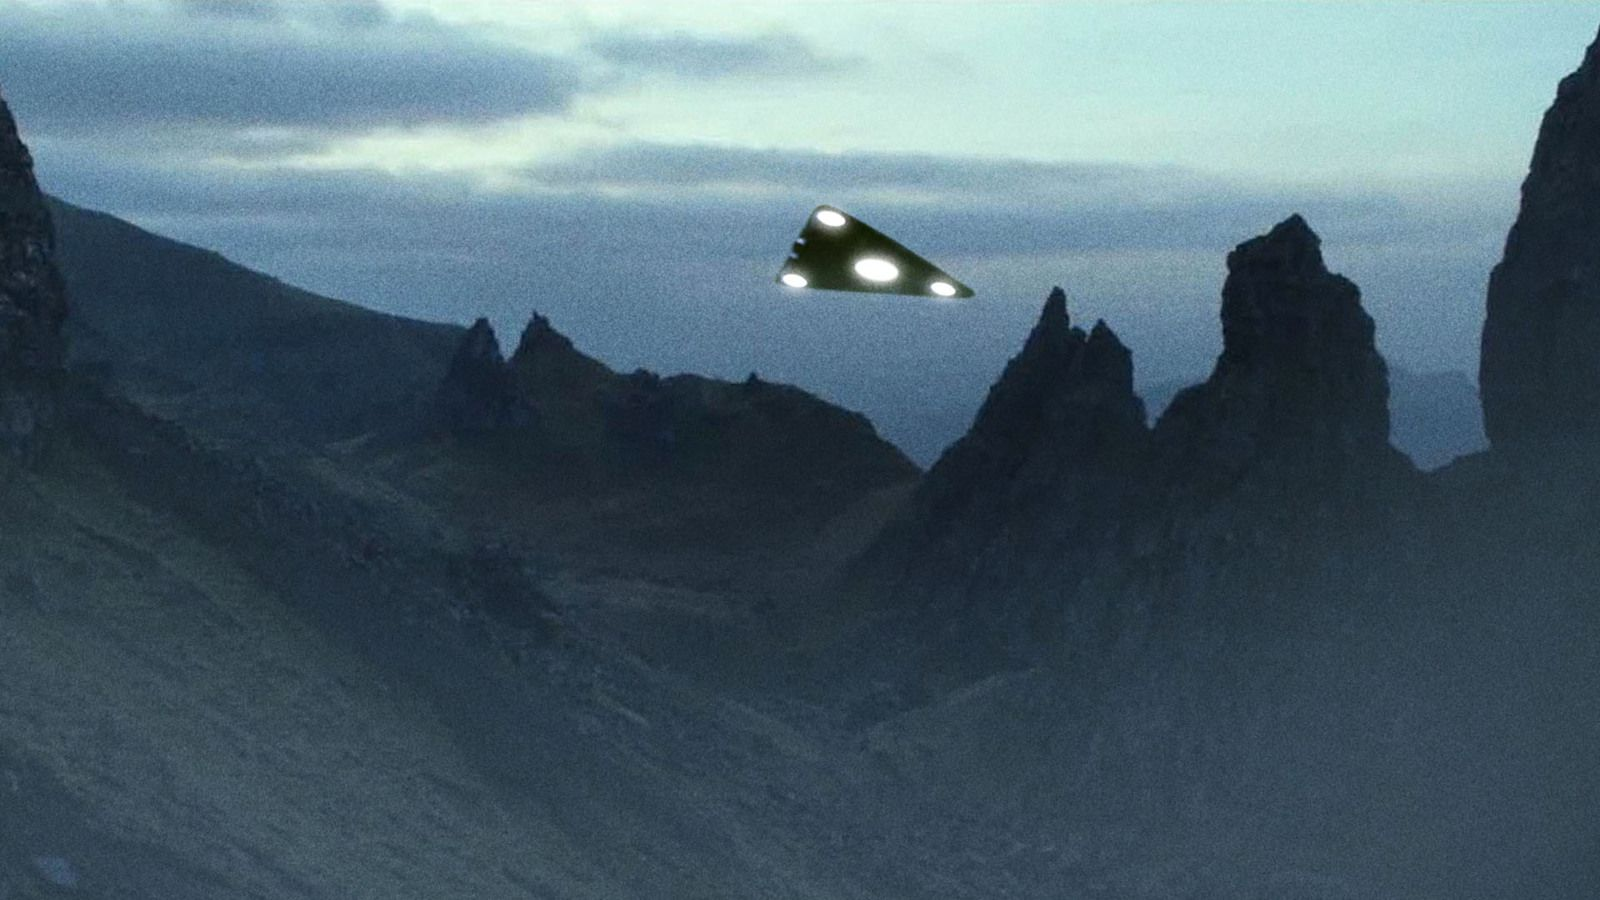 👽 TRIANGULAR UFO Sightings reported during Spring 2021 - The beginning of something HUGE ?